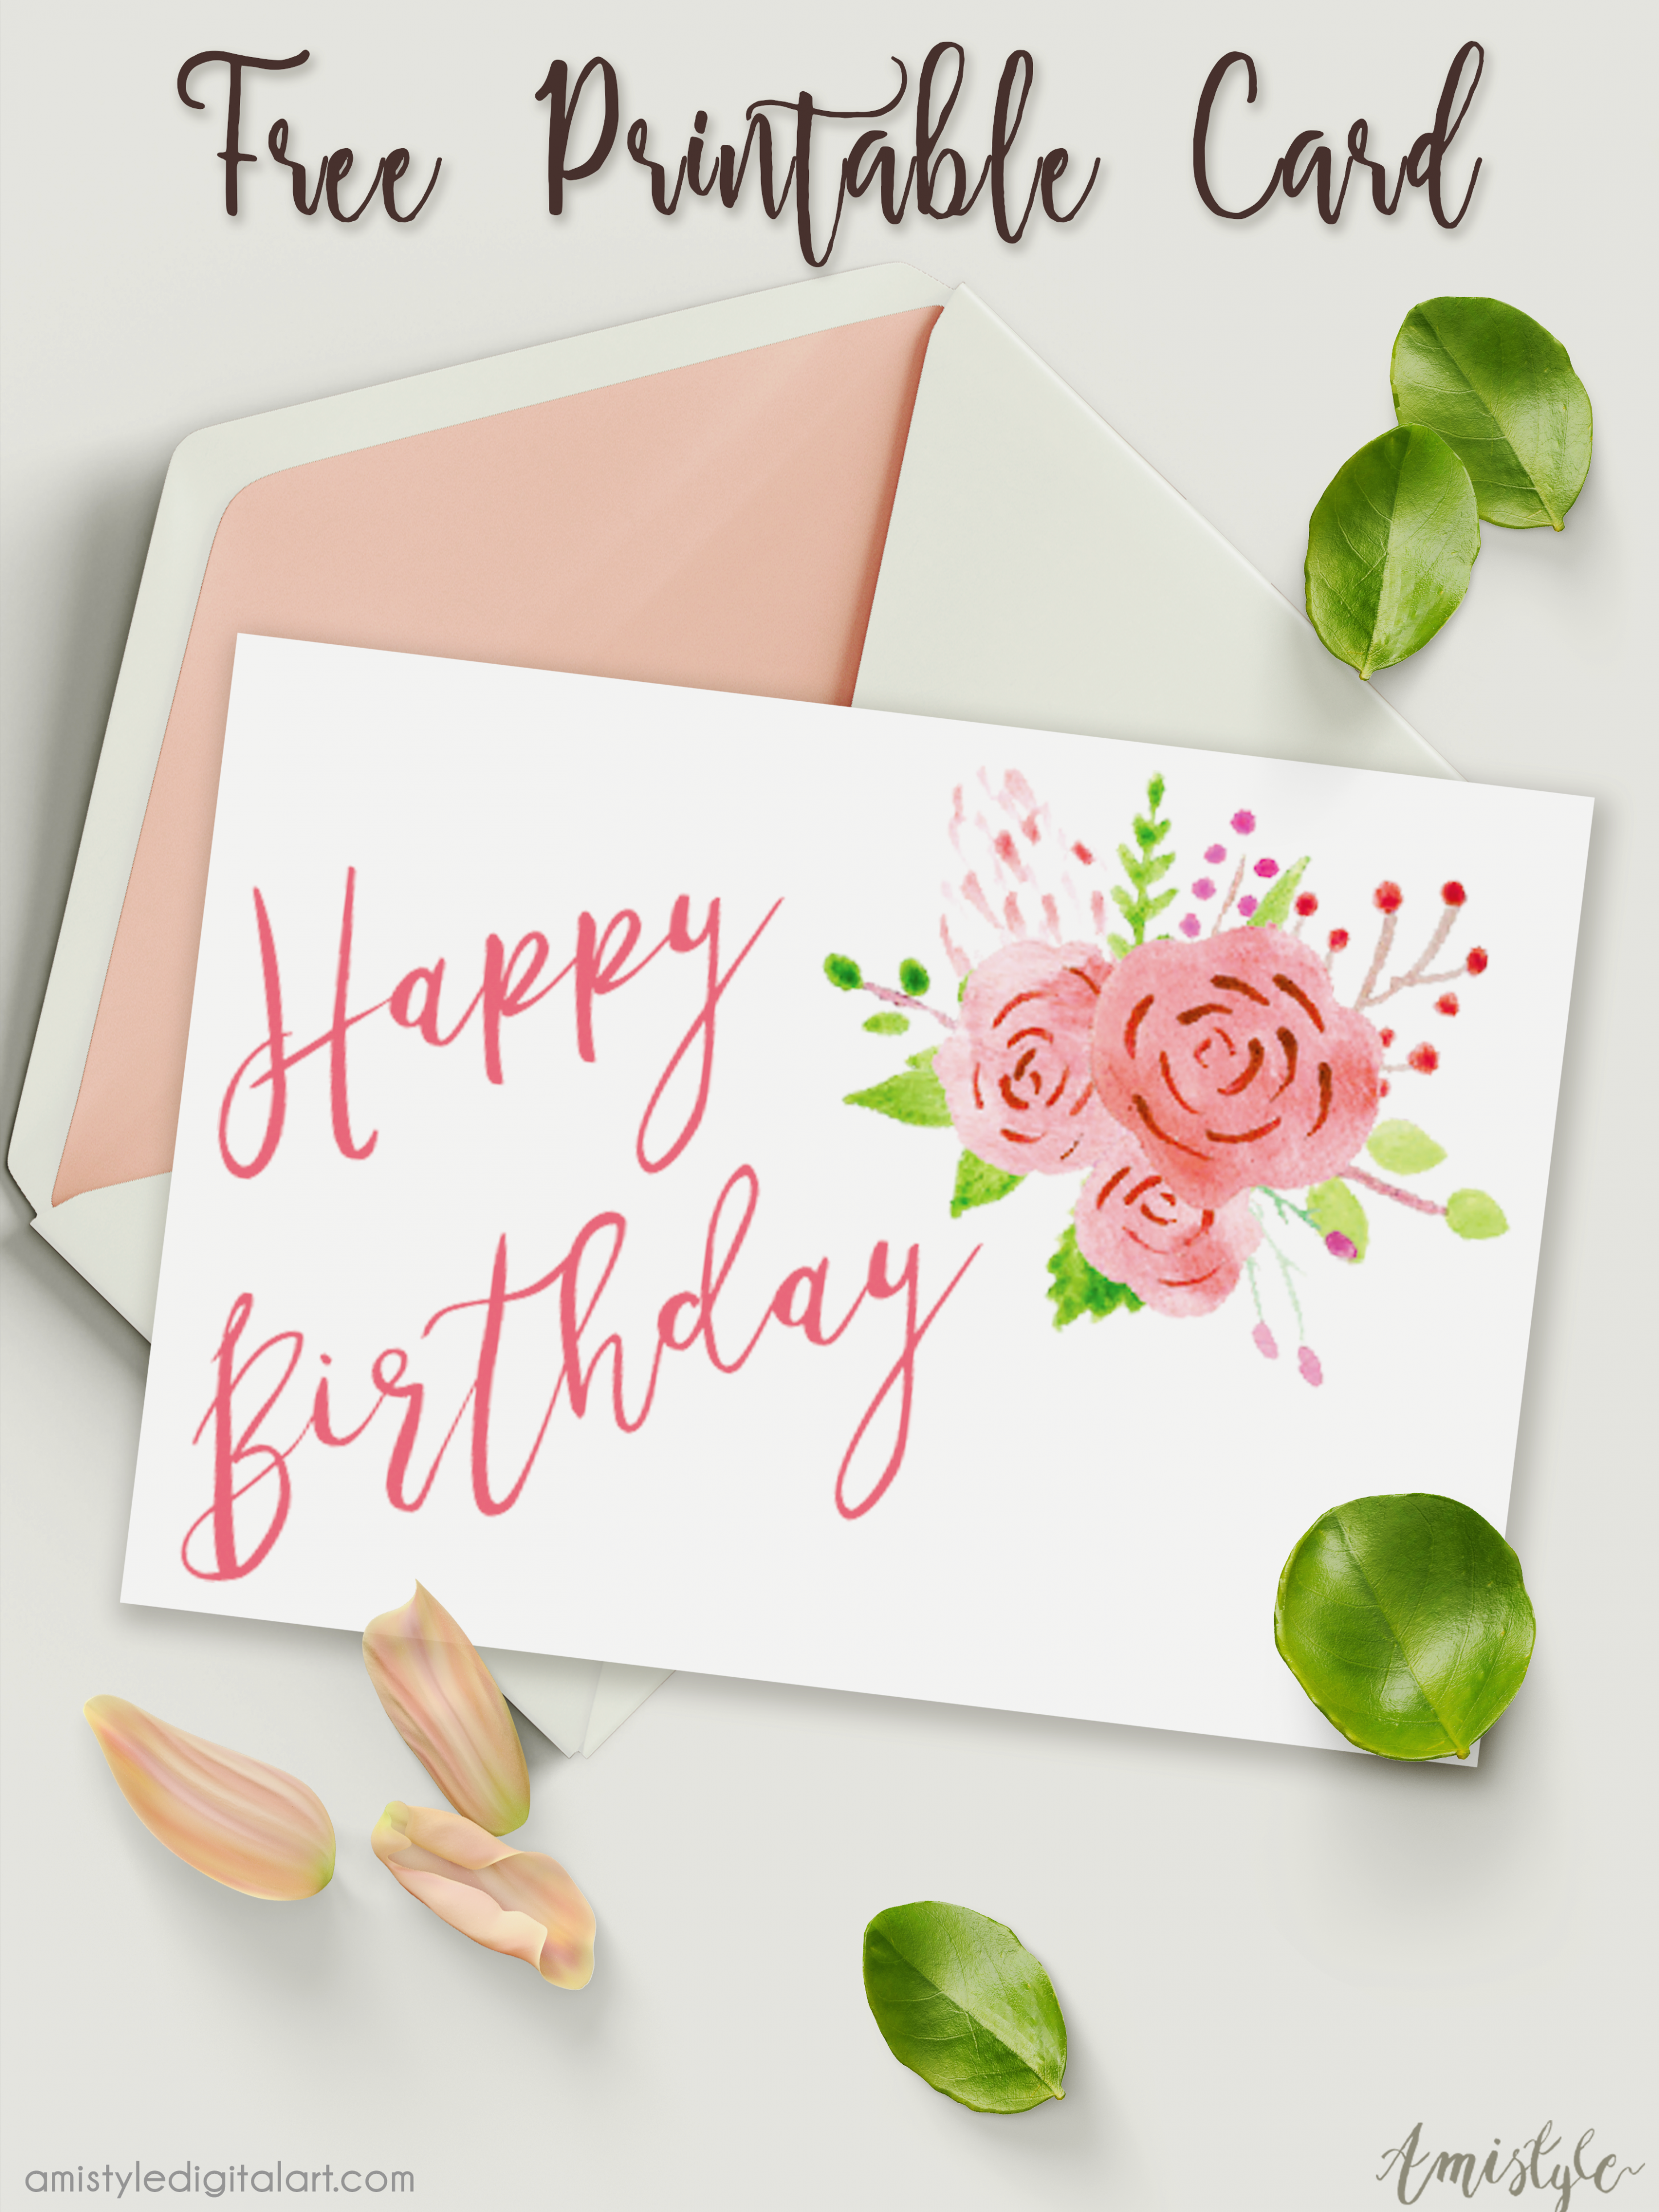 8 Top Image Free Printable Birthday Cards For Mom In 2021 Free Printable Birthday Cards Digital Birthday Cards Free Birthday Card